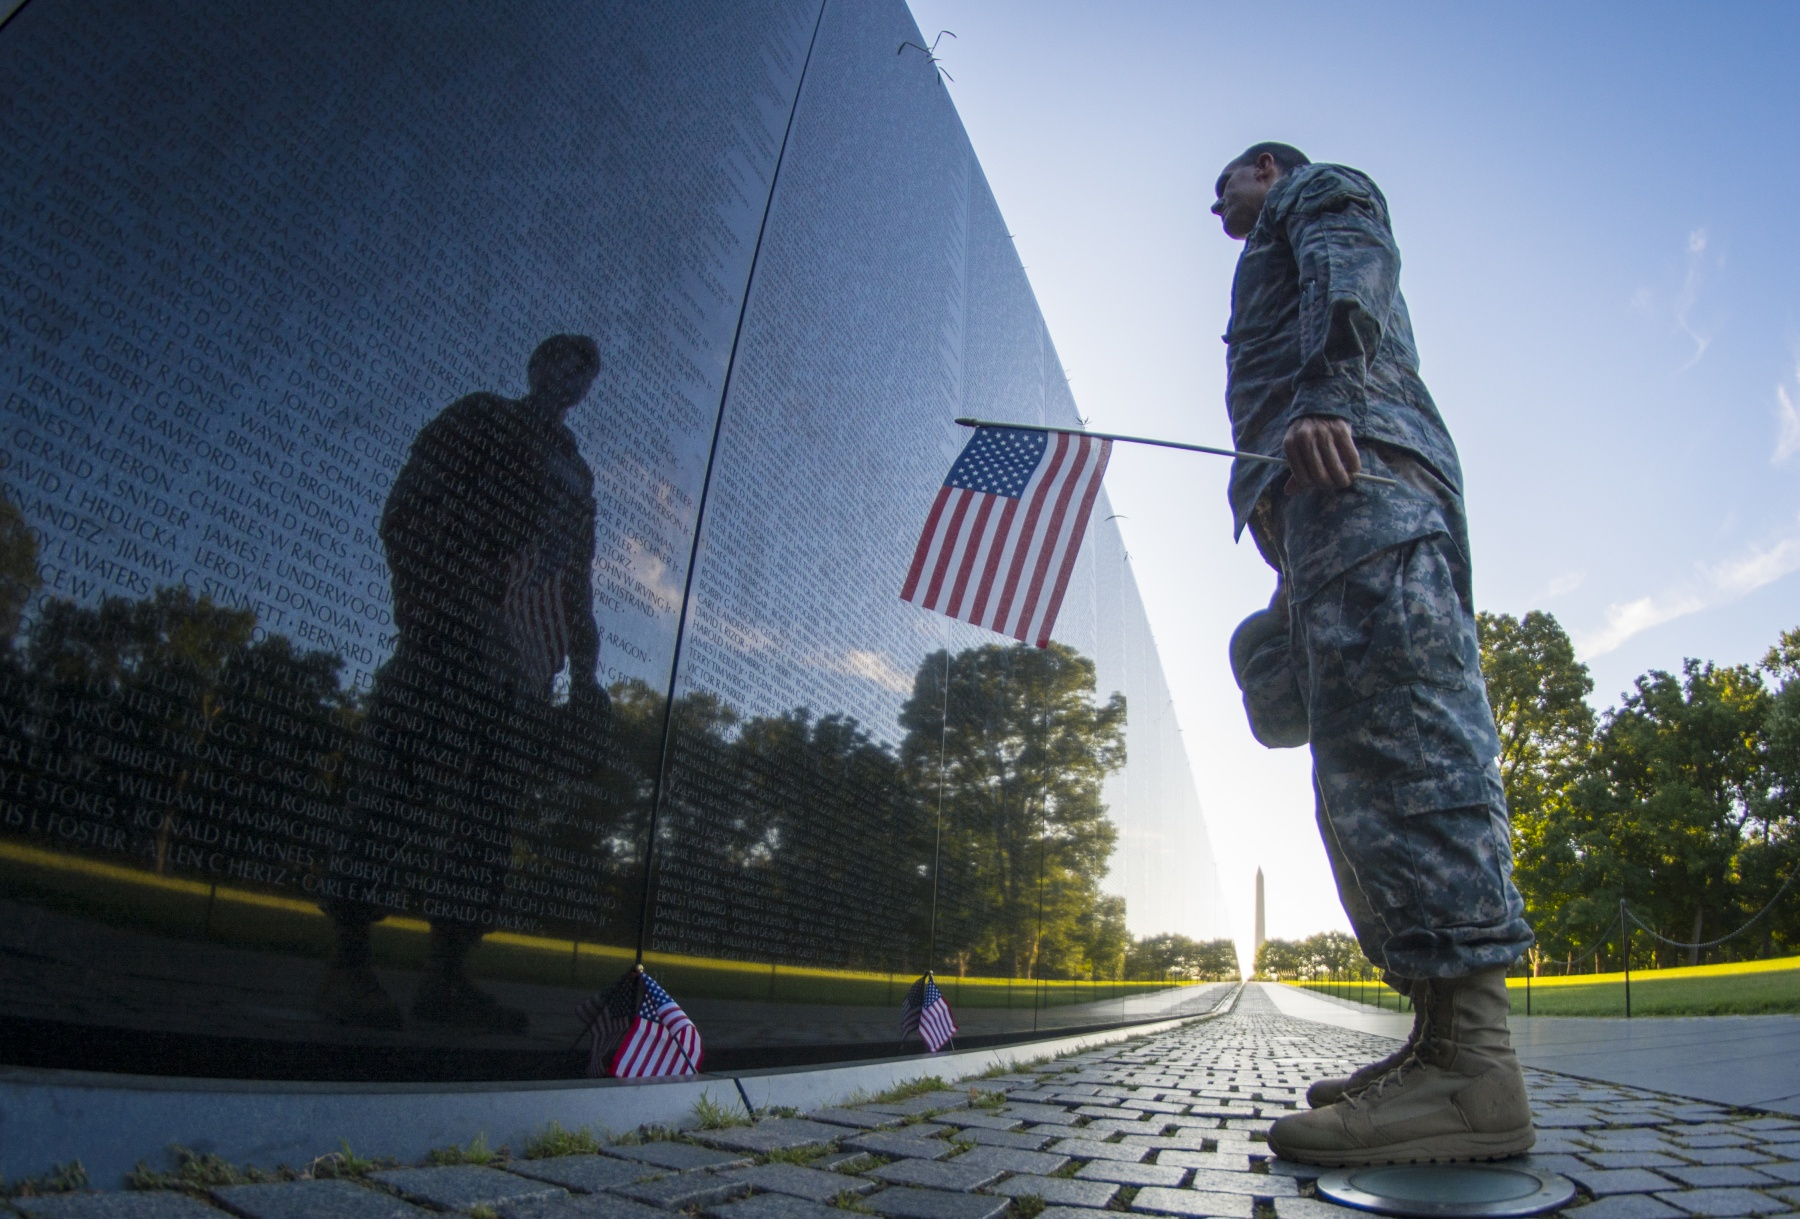 Image of soldier standing in front of Vietnam Memorial in Washington D.C.